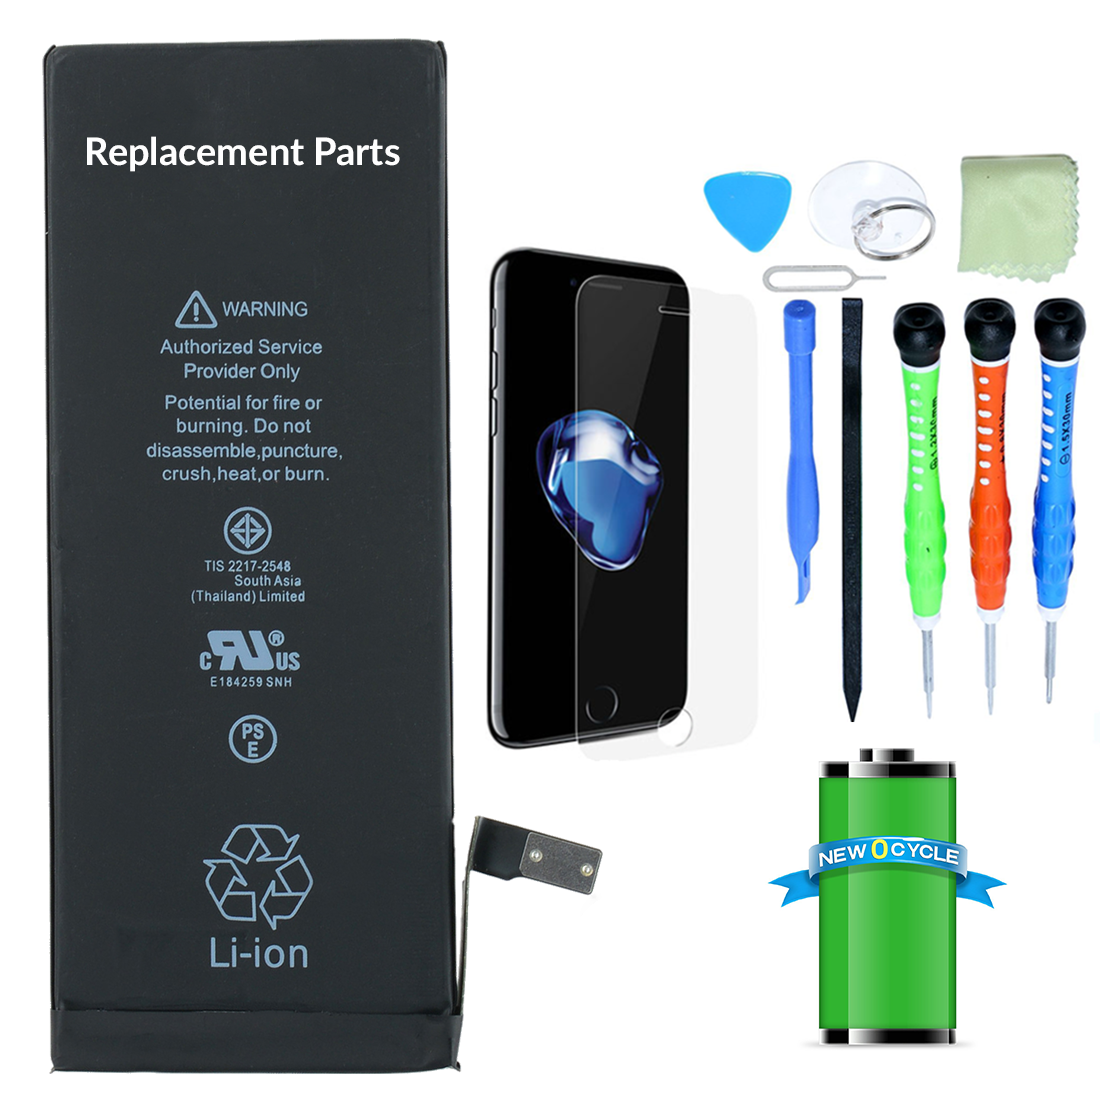 iPhone Battery Repair Kit - iPhone 5C